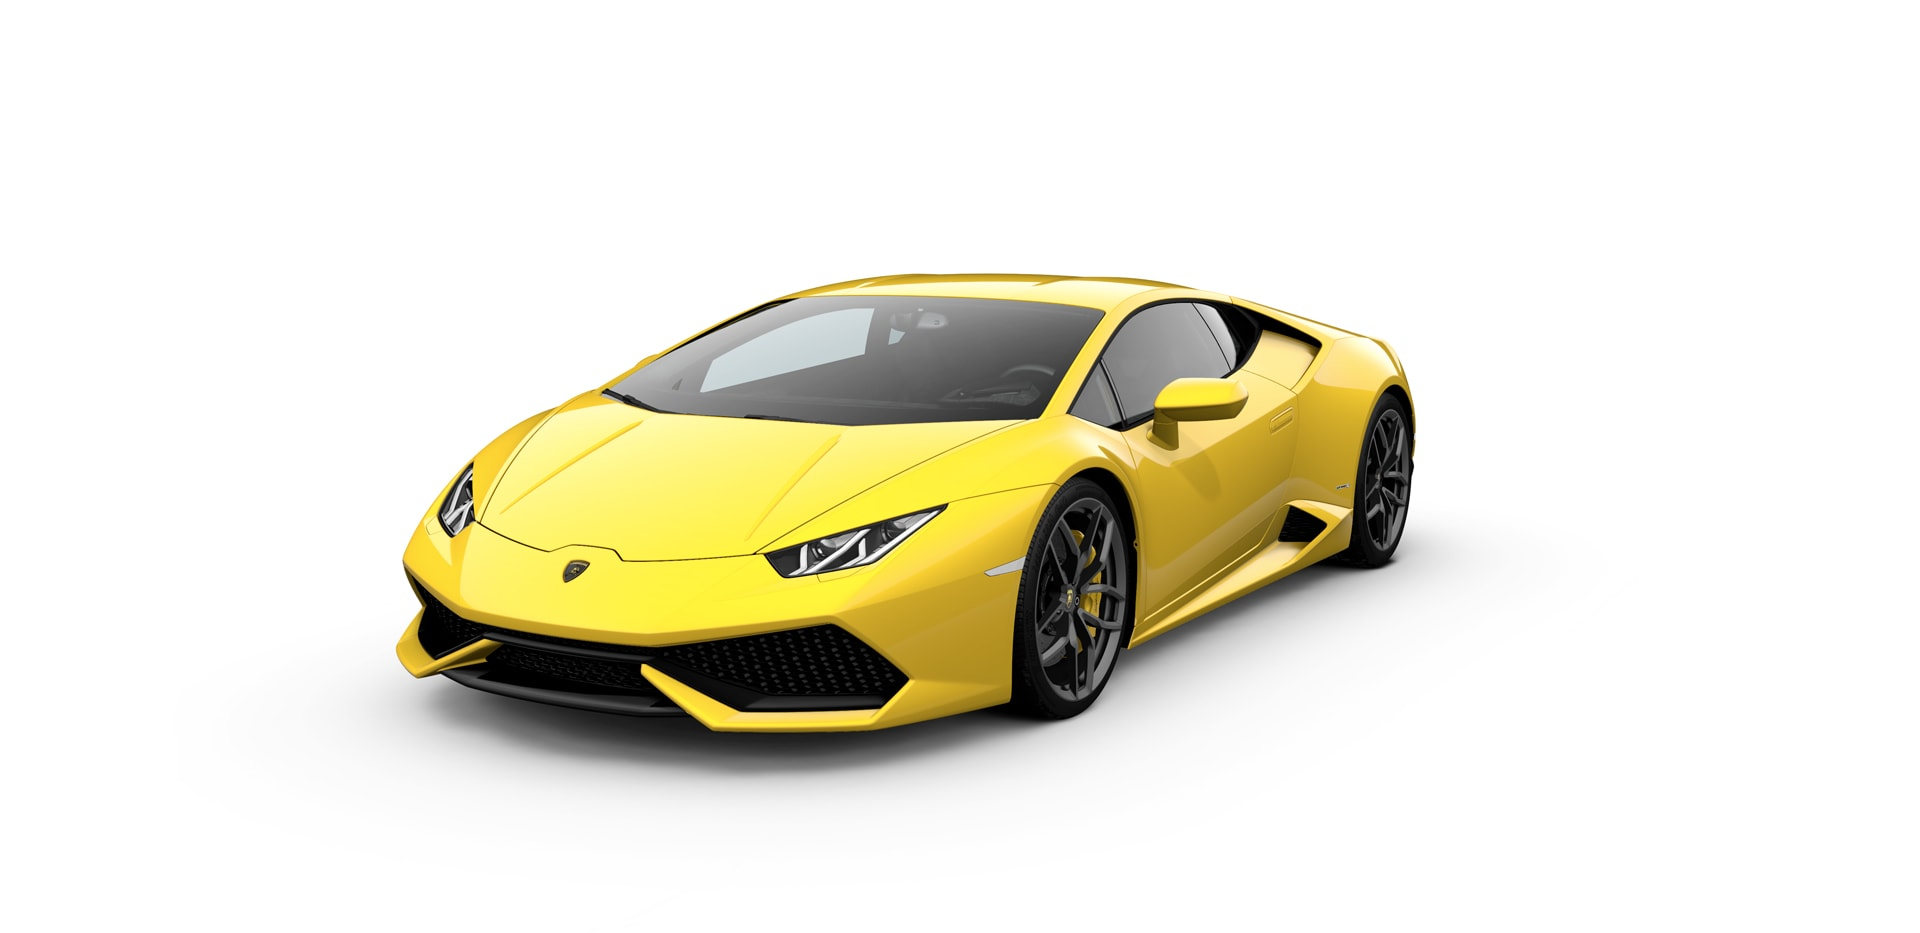 Pleasing Lamborghini Huracan Coupe Technical Specifications Pictures Videos Wiring Digital Resources Funapmognl